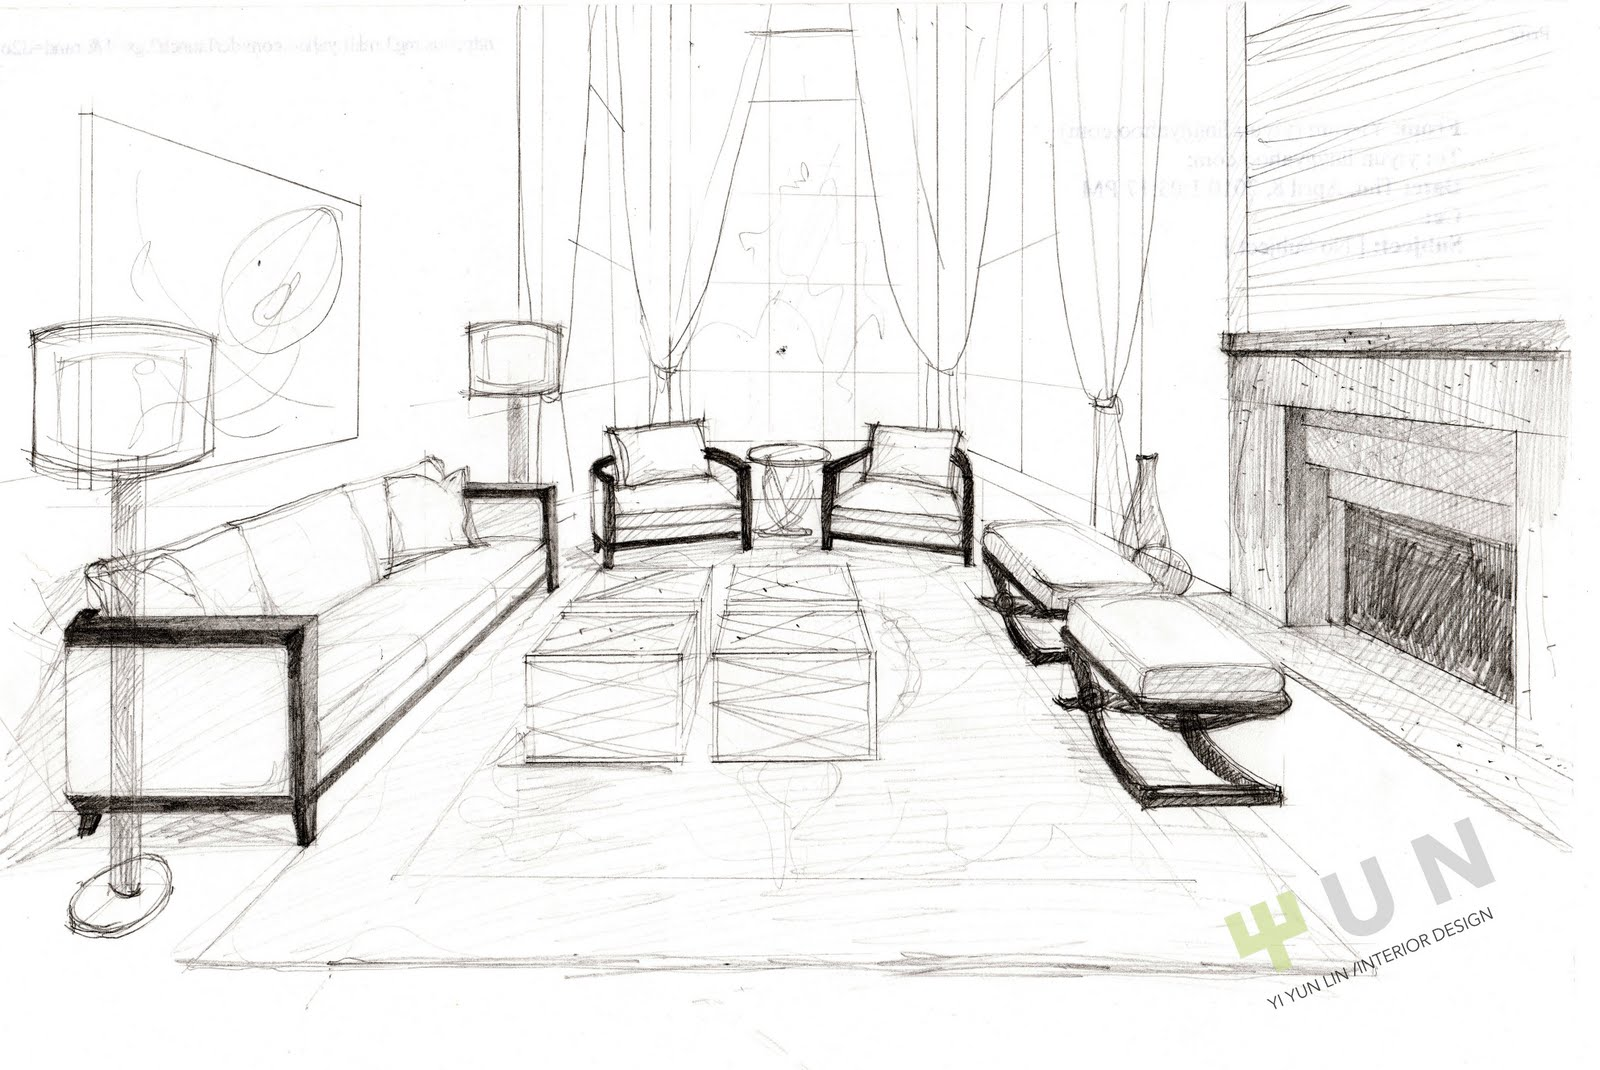 Interior design sketches wallpress 1080p hd desktop for Interior design sketches